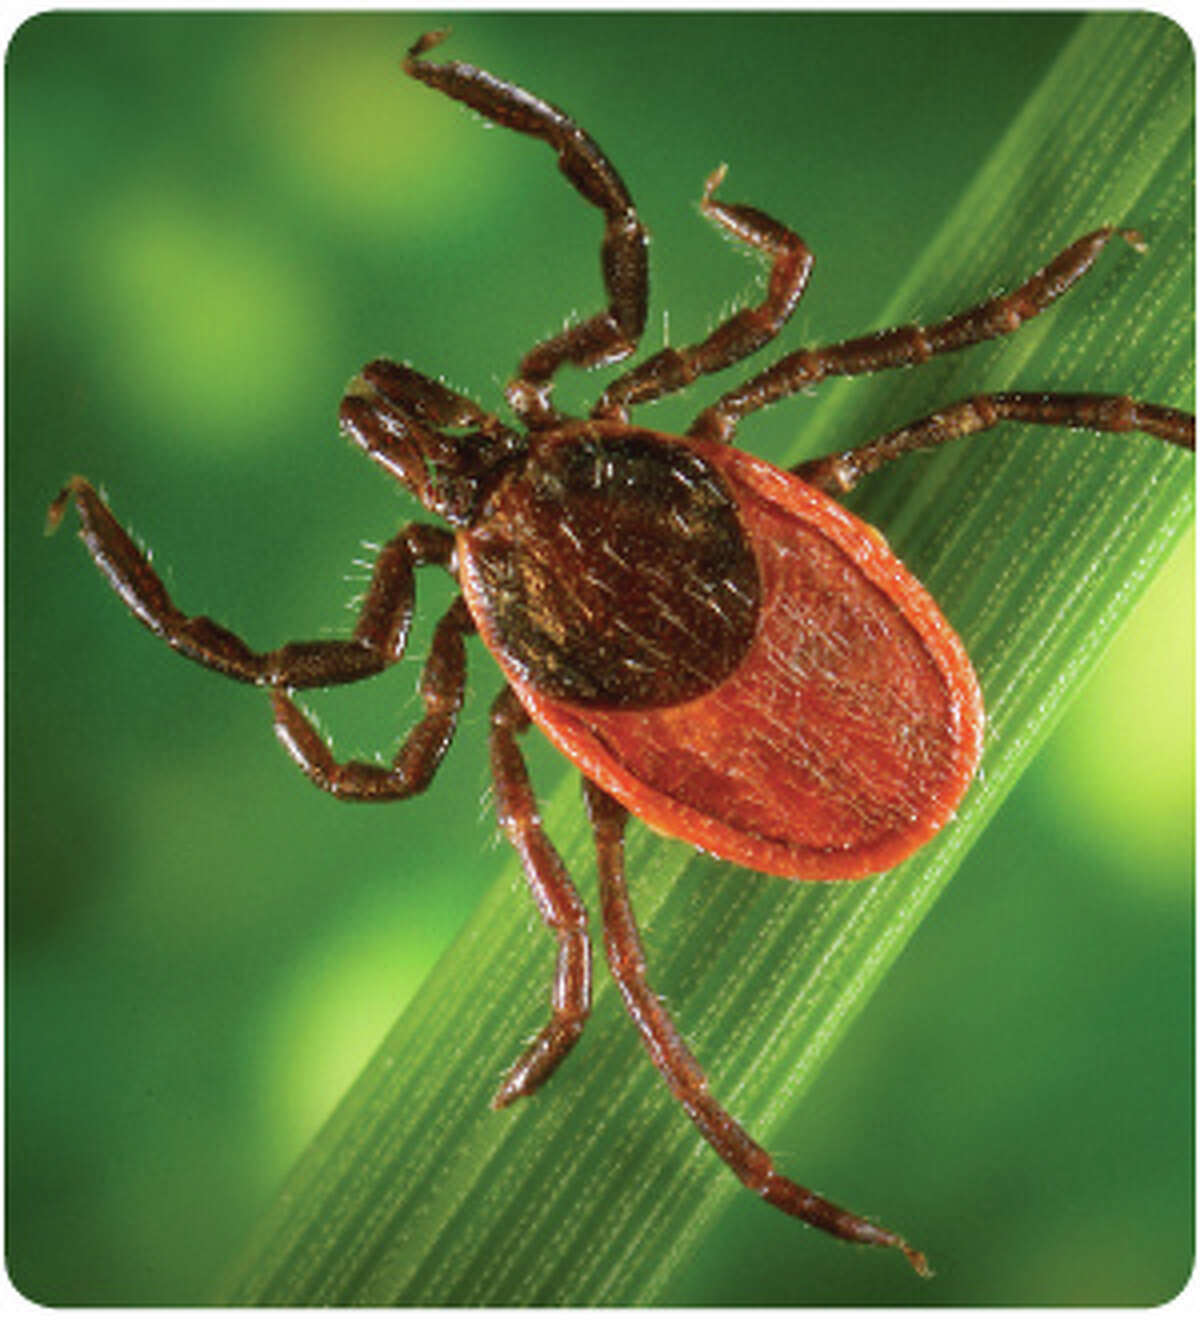 The natural pesticide to control ticks is made of the F52 strain of the strain was tested on residential properties in northwestern Connecticut and found up to 74 percent fewer ticks after treatment.